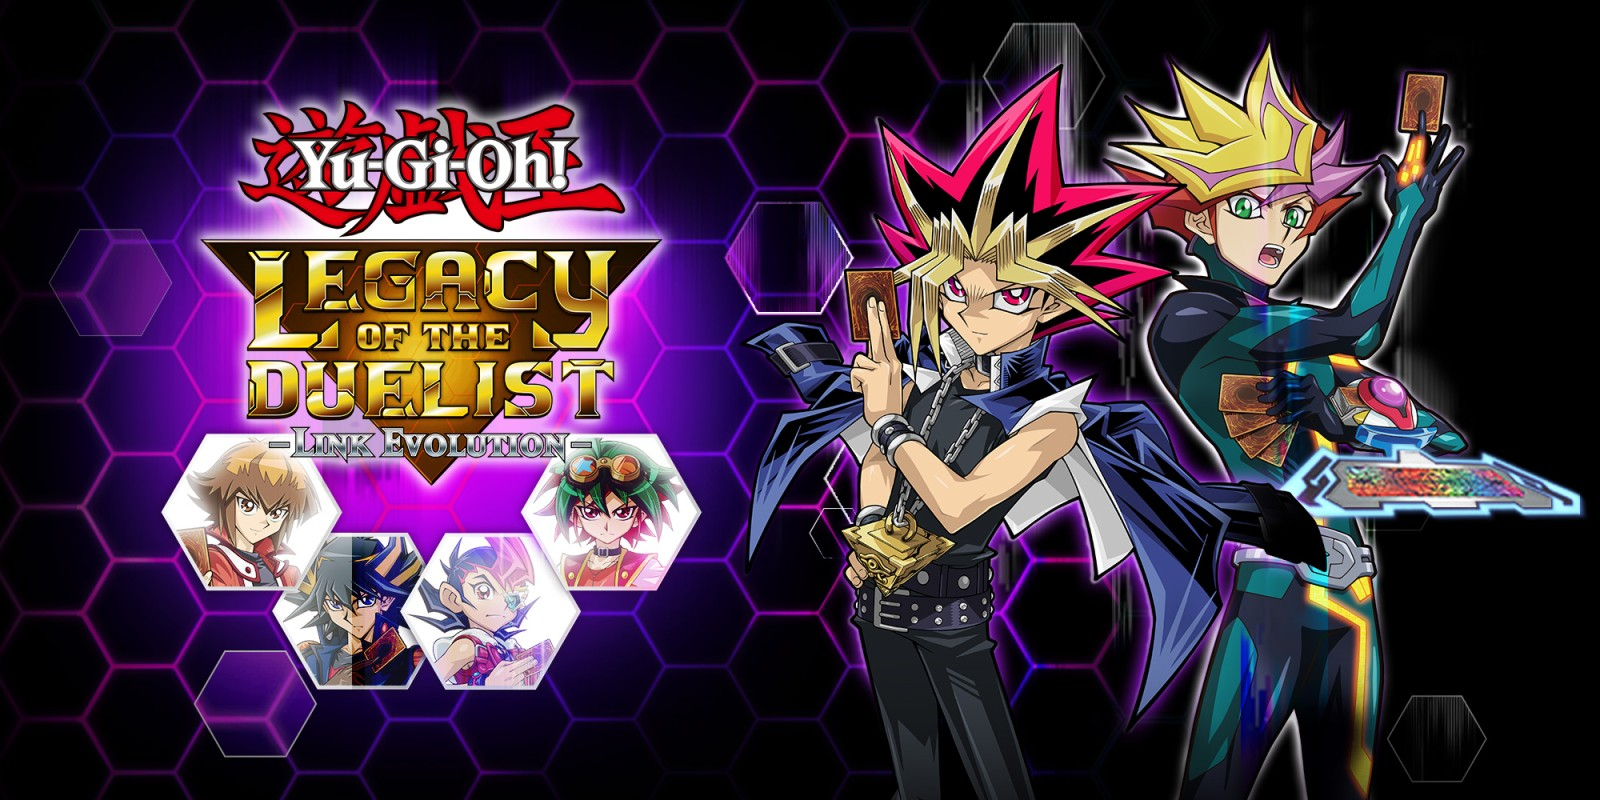 Yu-Gi-Oh! Legacy of the Duelist sarà solo in edizione digitale thumbnail